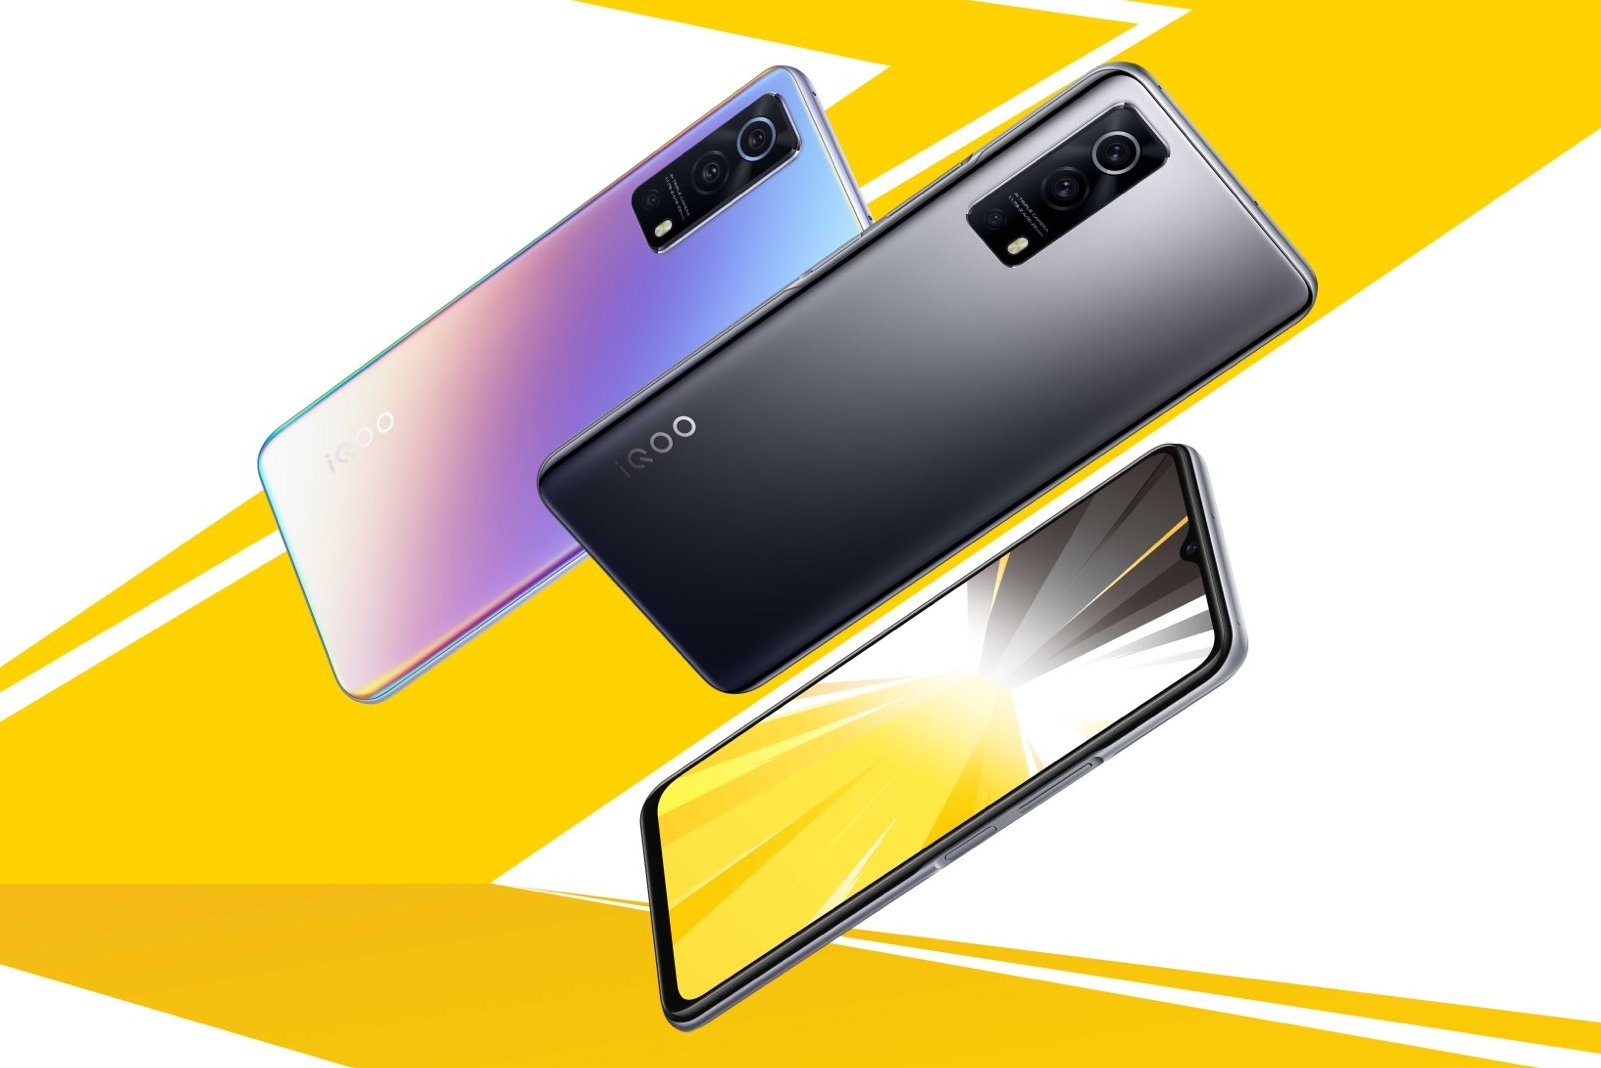 Specification of iQOO Z5 Pro has been leaked